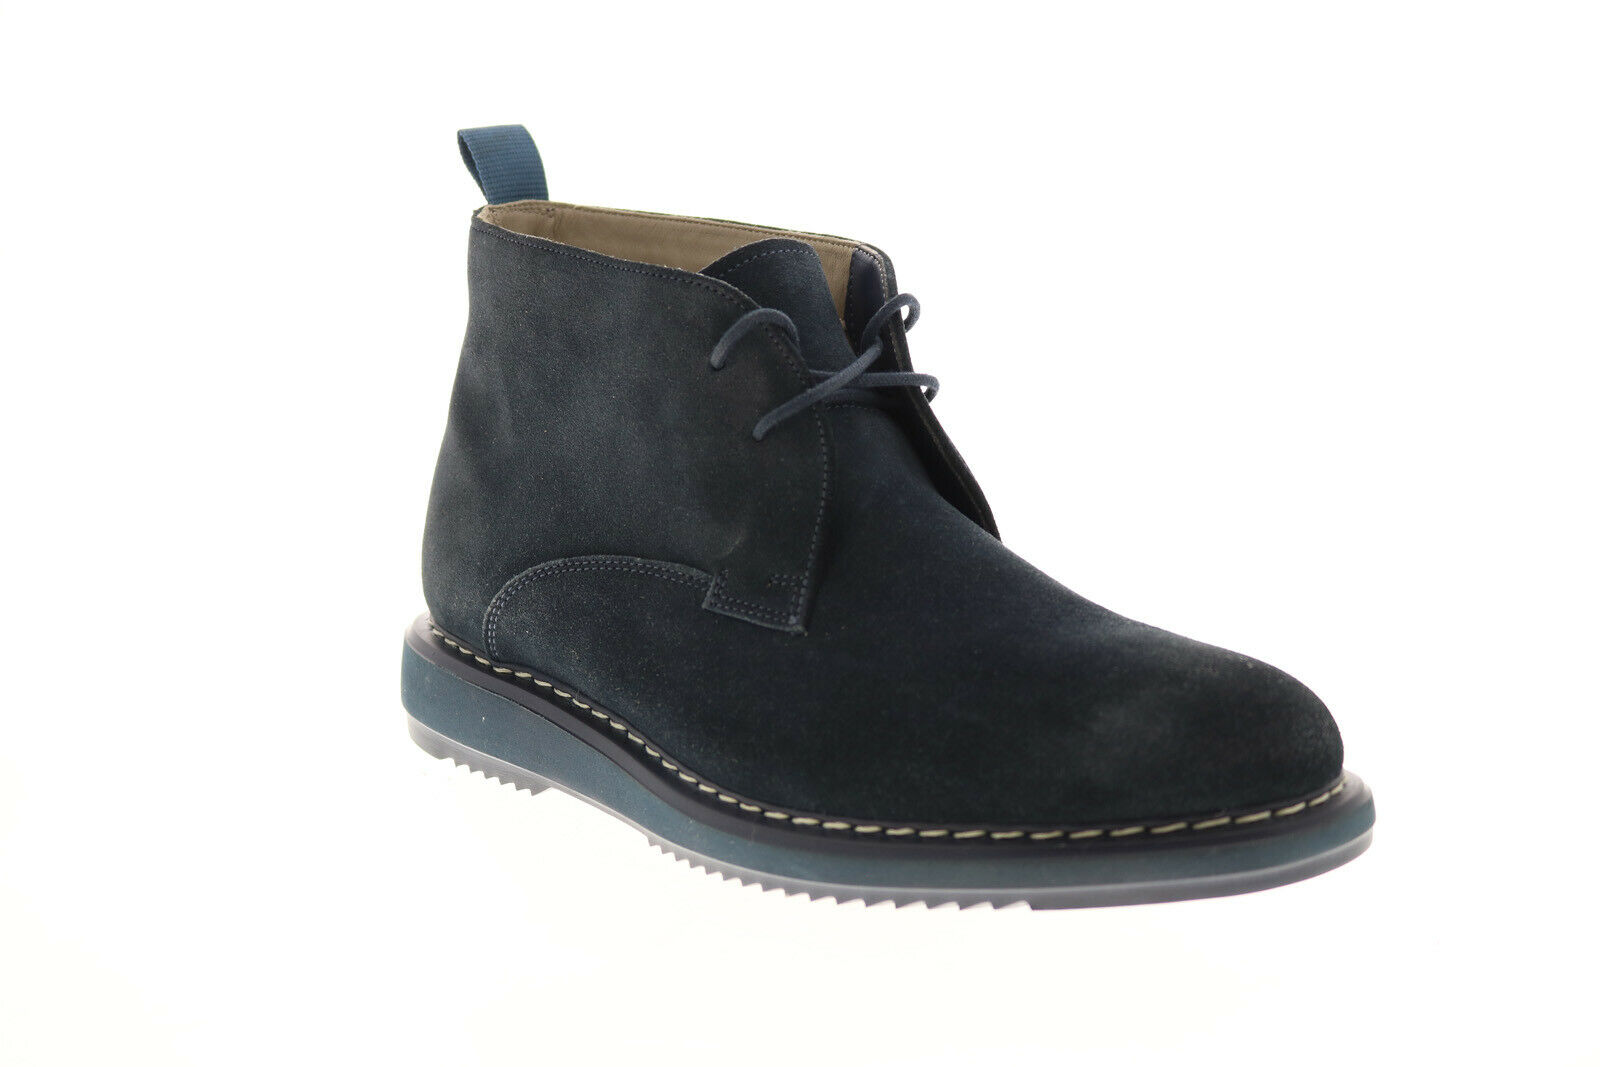 Clarks Kenley Suede Chukka 26120697 Mens Blue Suede Lace Up Chukkas Boots